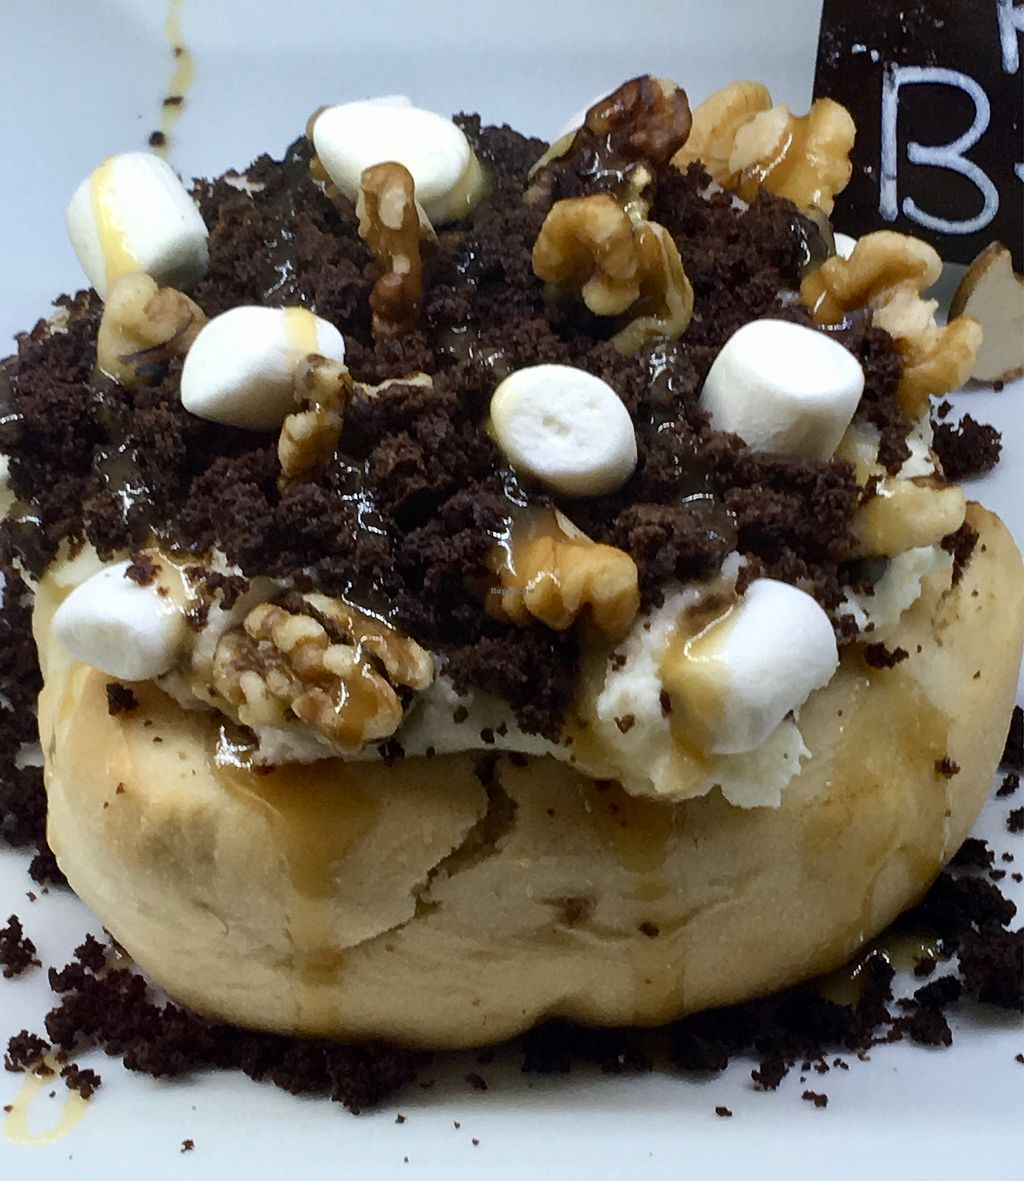 """Photo of Cinnaholic  by <a href=""""/members/profile/ChereseTarter"""">ChereseTarter</a> <br/>Rocky Road <br/> March 22, 2018  - <a href='/contact/abuse/image/89663/374091'>Report</a>"""